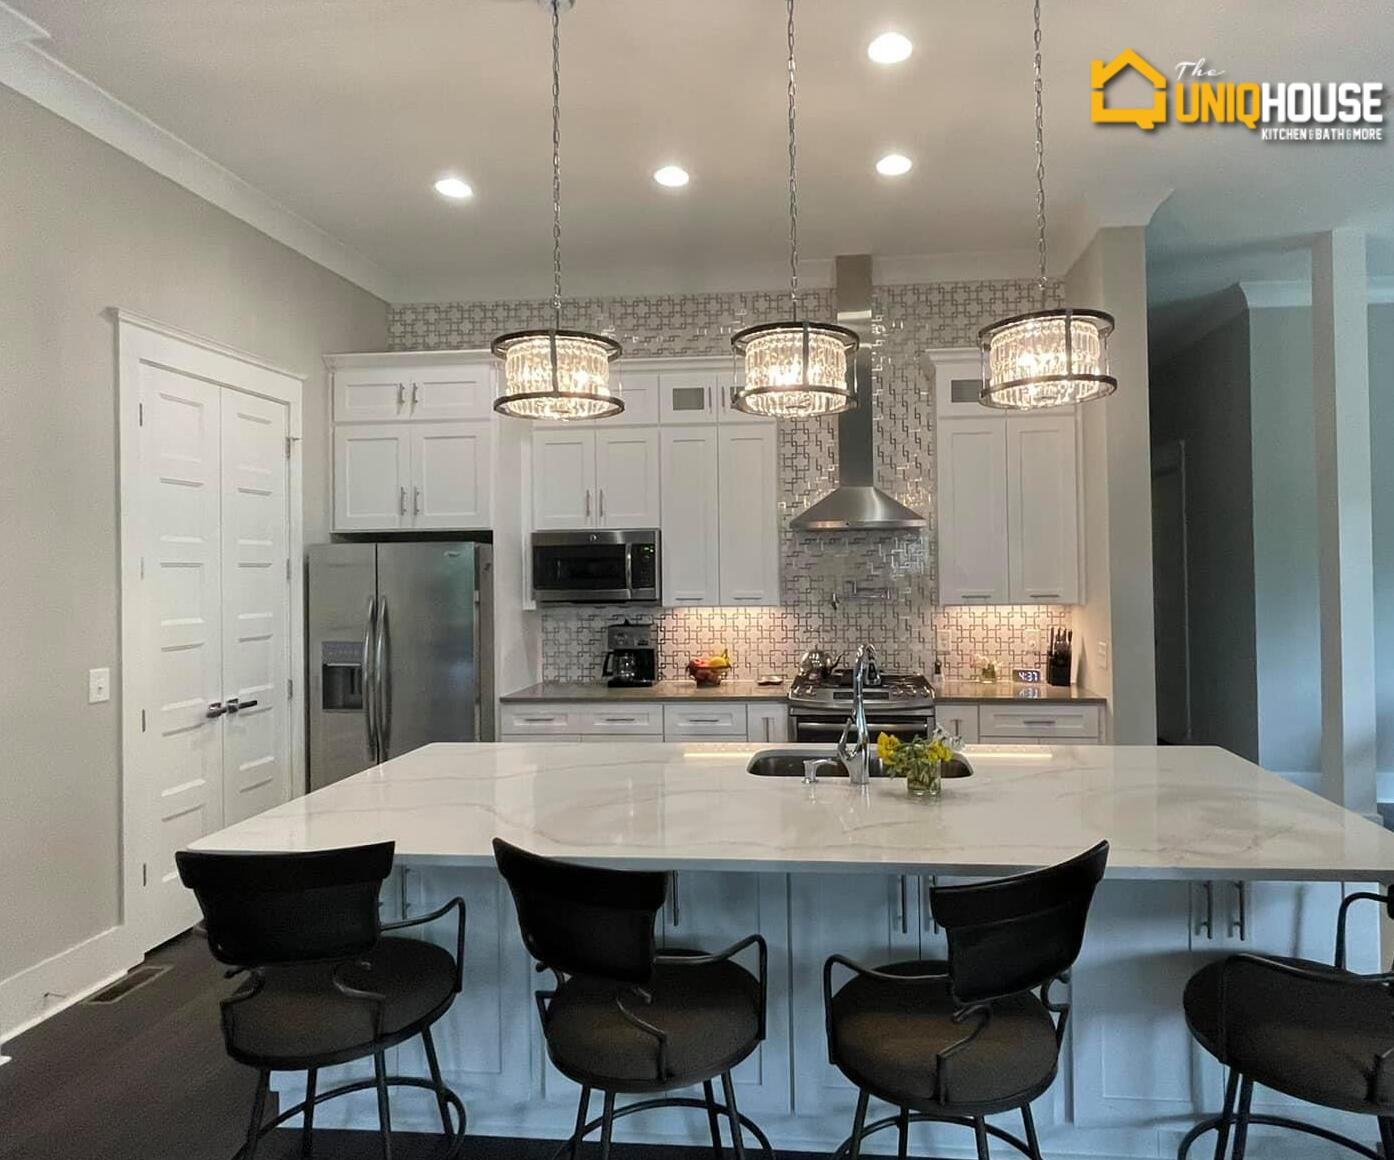 Kitchen Remodel Costs and Considerations: Use This Comprehensive Checklist